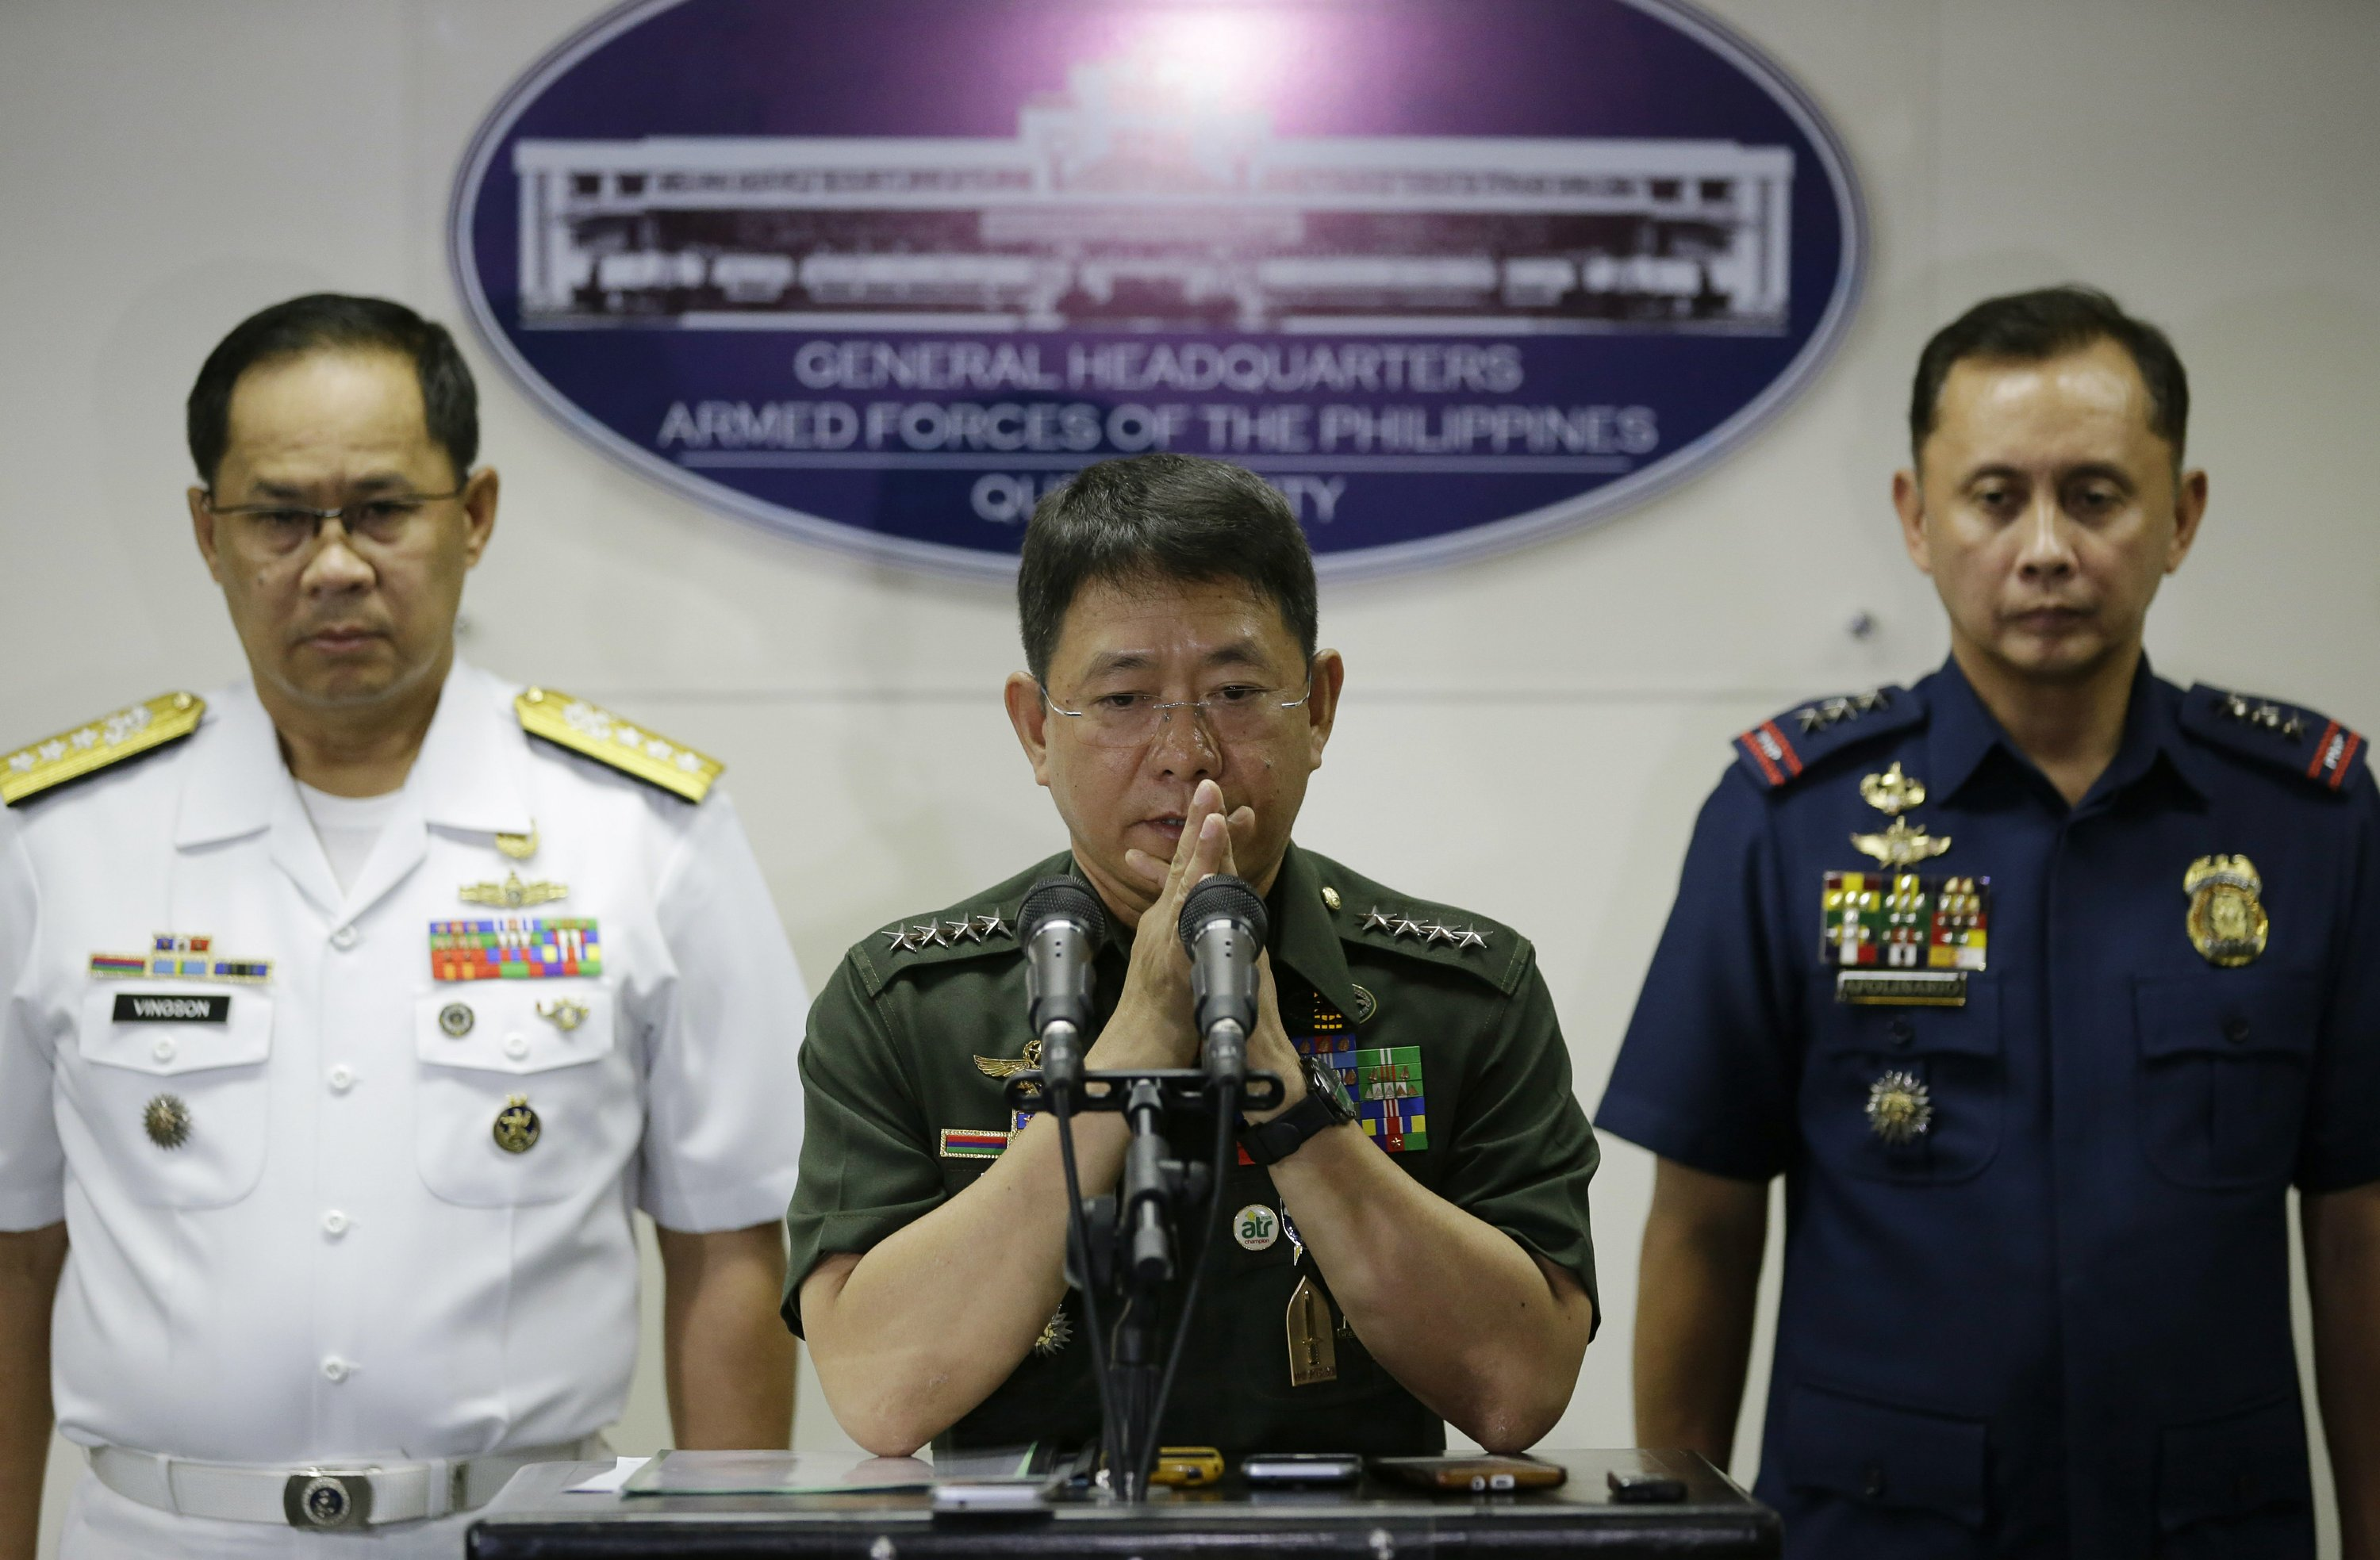 The Latest: Clashes with Abu Sayyaf raise tourism concerns